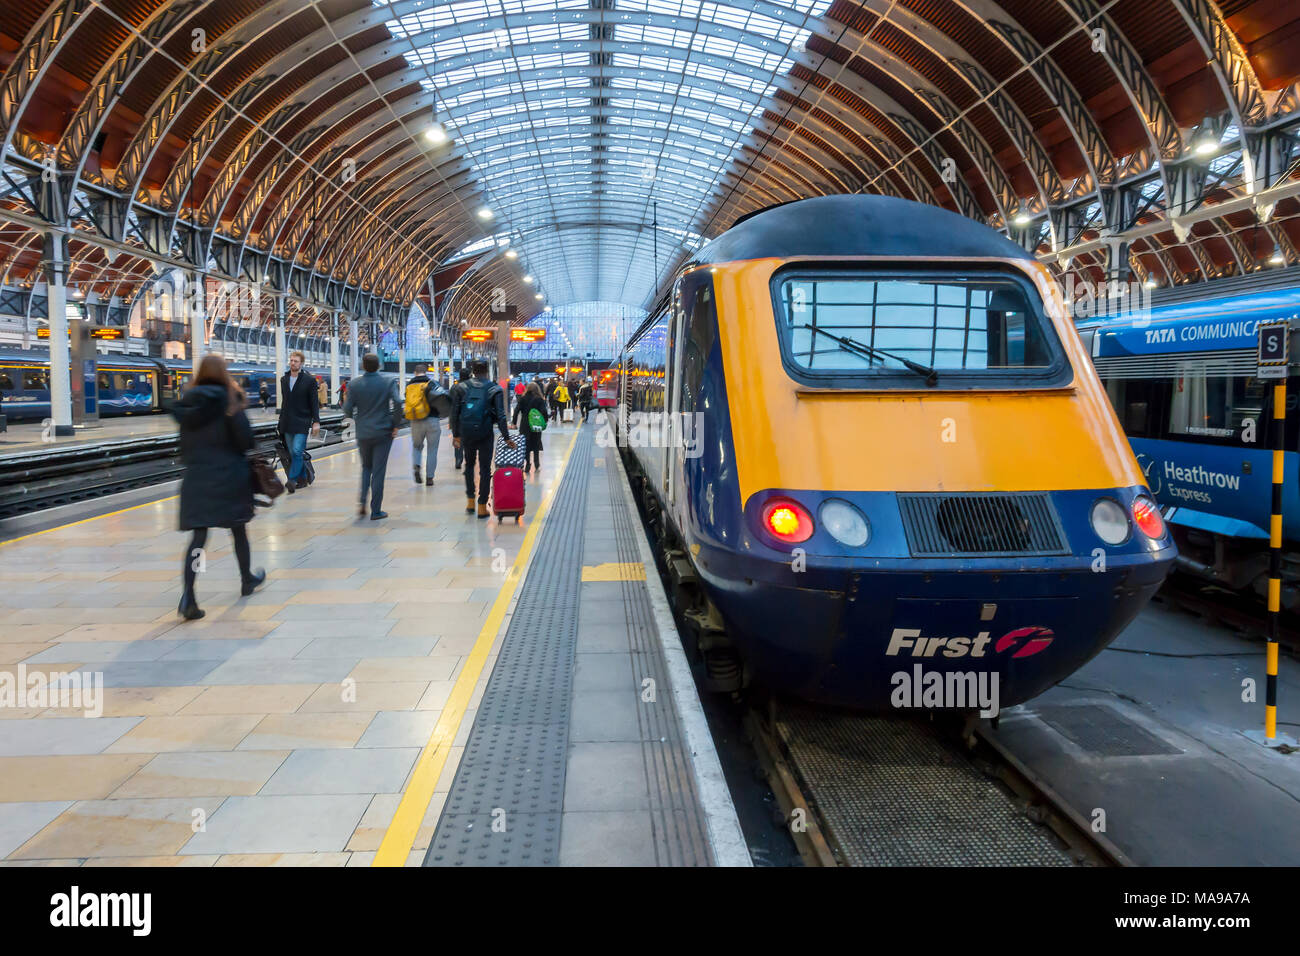 trains-sit-at-the-platform-at-paddington-railway-station-in-london-uk-MA9A7A.jpg